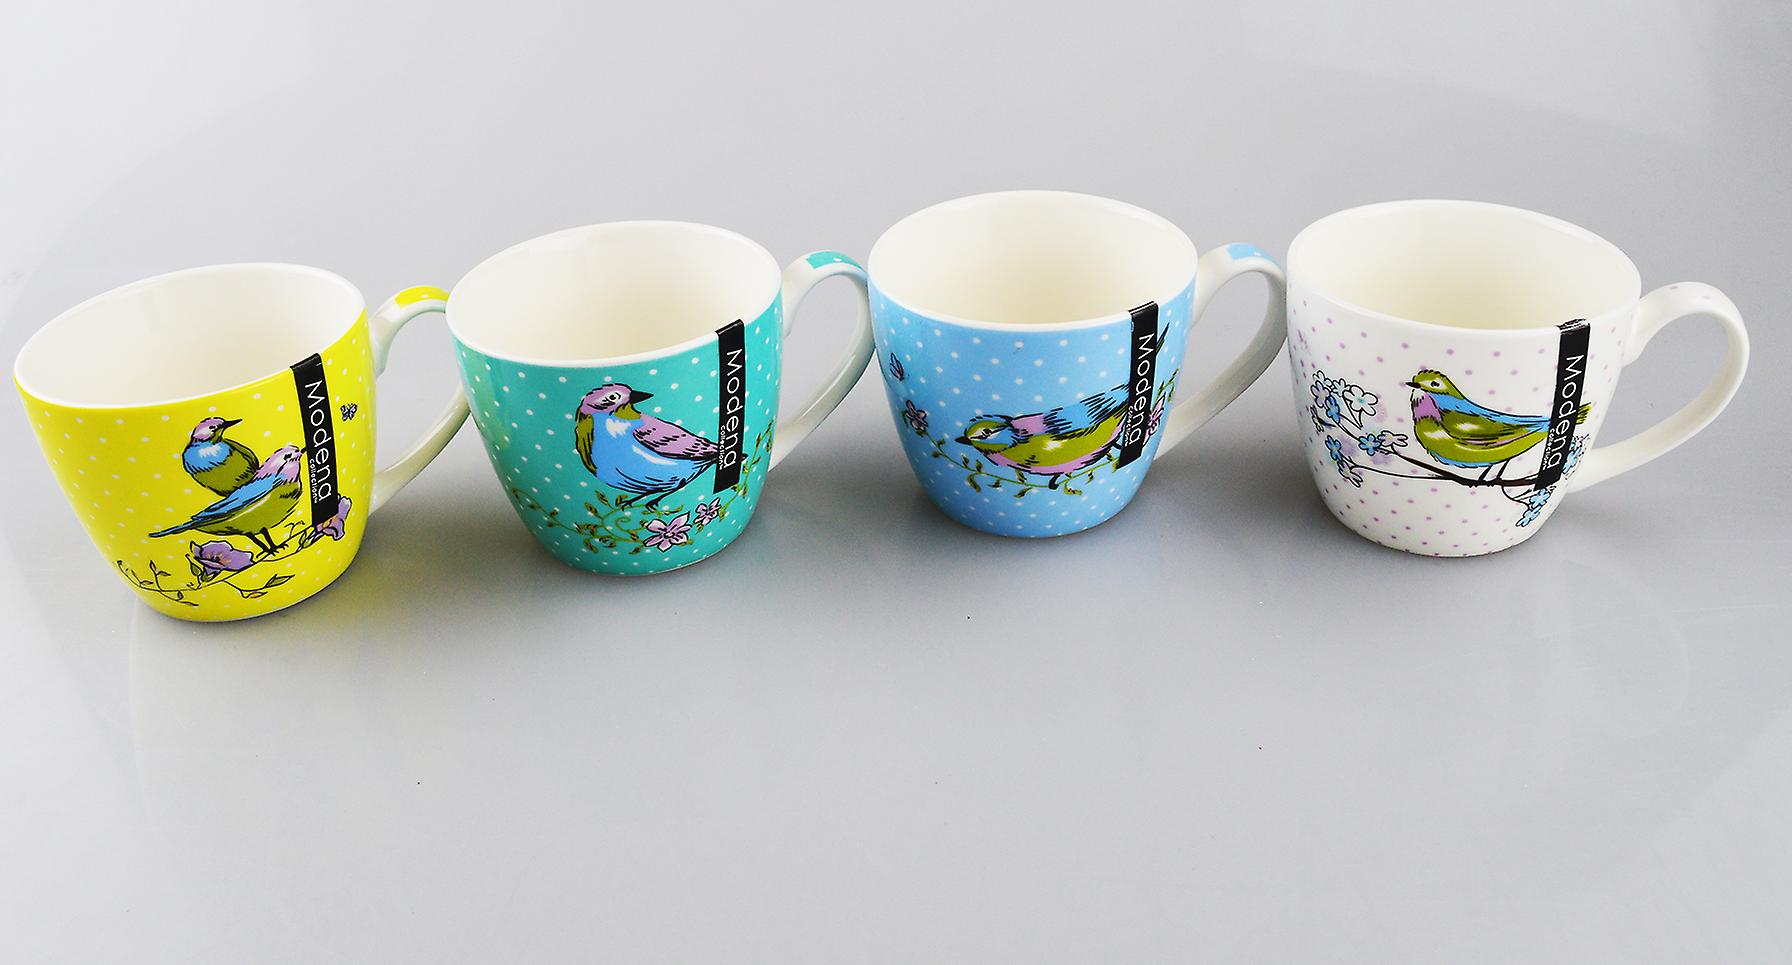 New Bone China Mugs Set of 4 Bird Design Tea Coffee Home Kitchen Office Cups